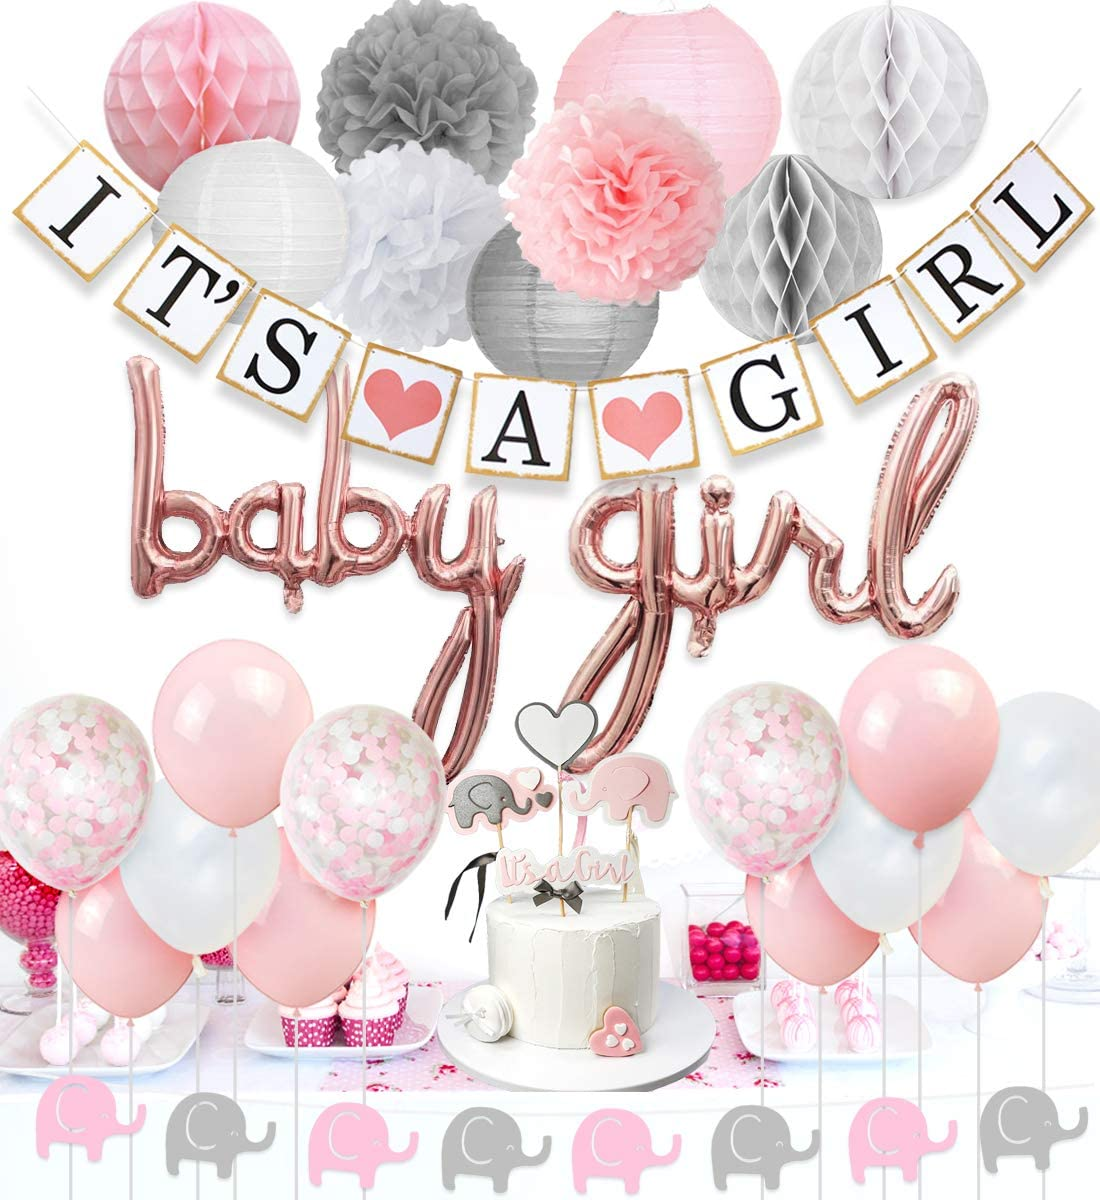 JOYMEMO Baby Shower Decorations for Girls Pink and White, Baby Girl Balloons, Elephant Garland, Confetti Balloons, Elephant Cake Topper for Baby Shower Supplies